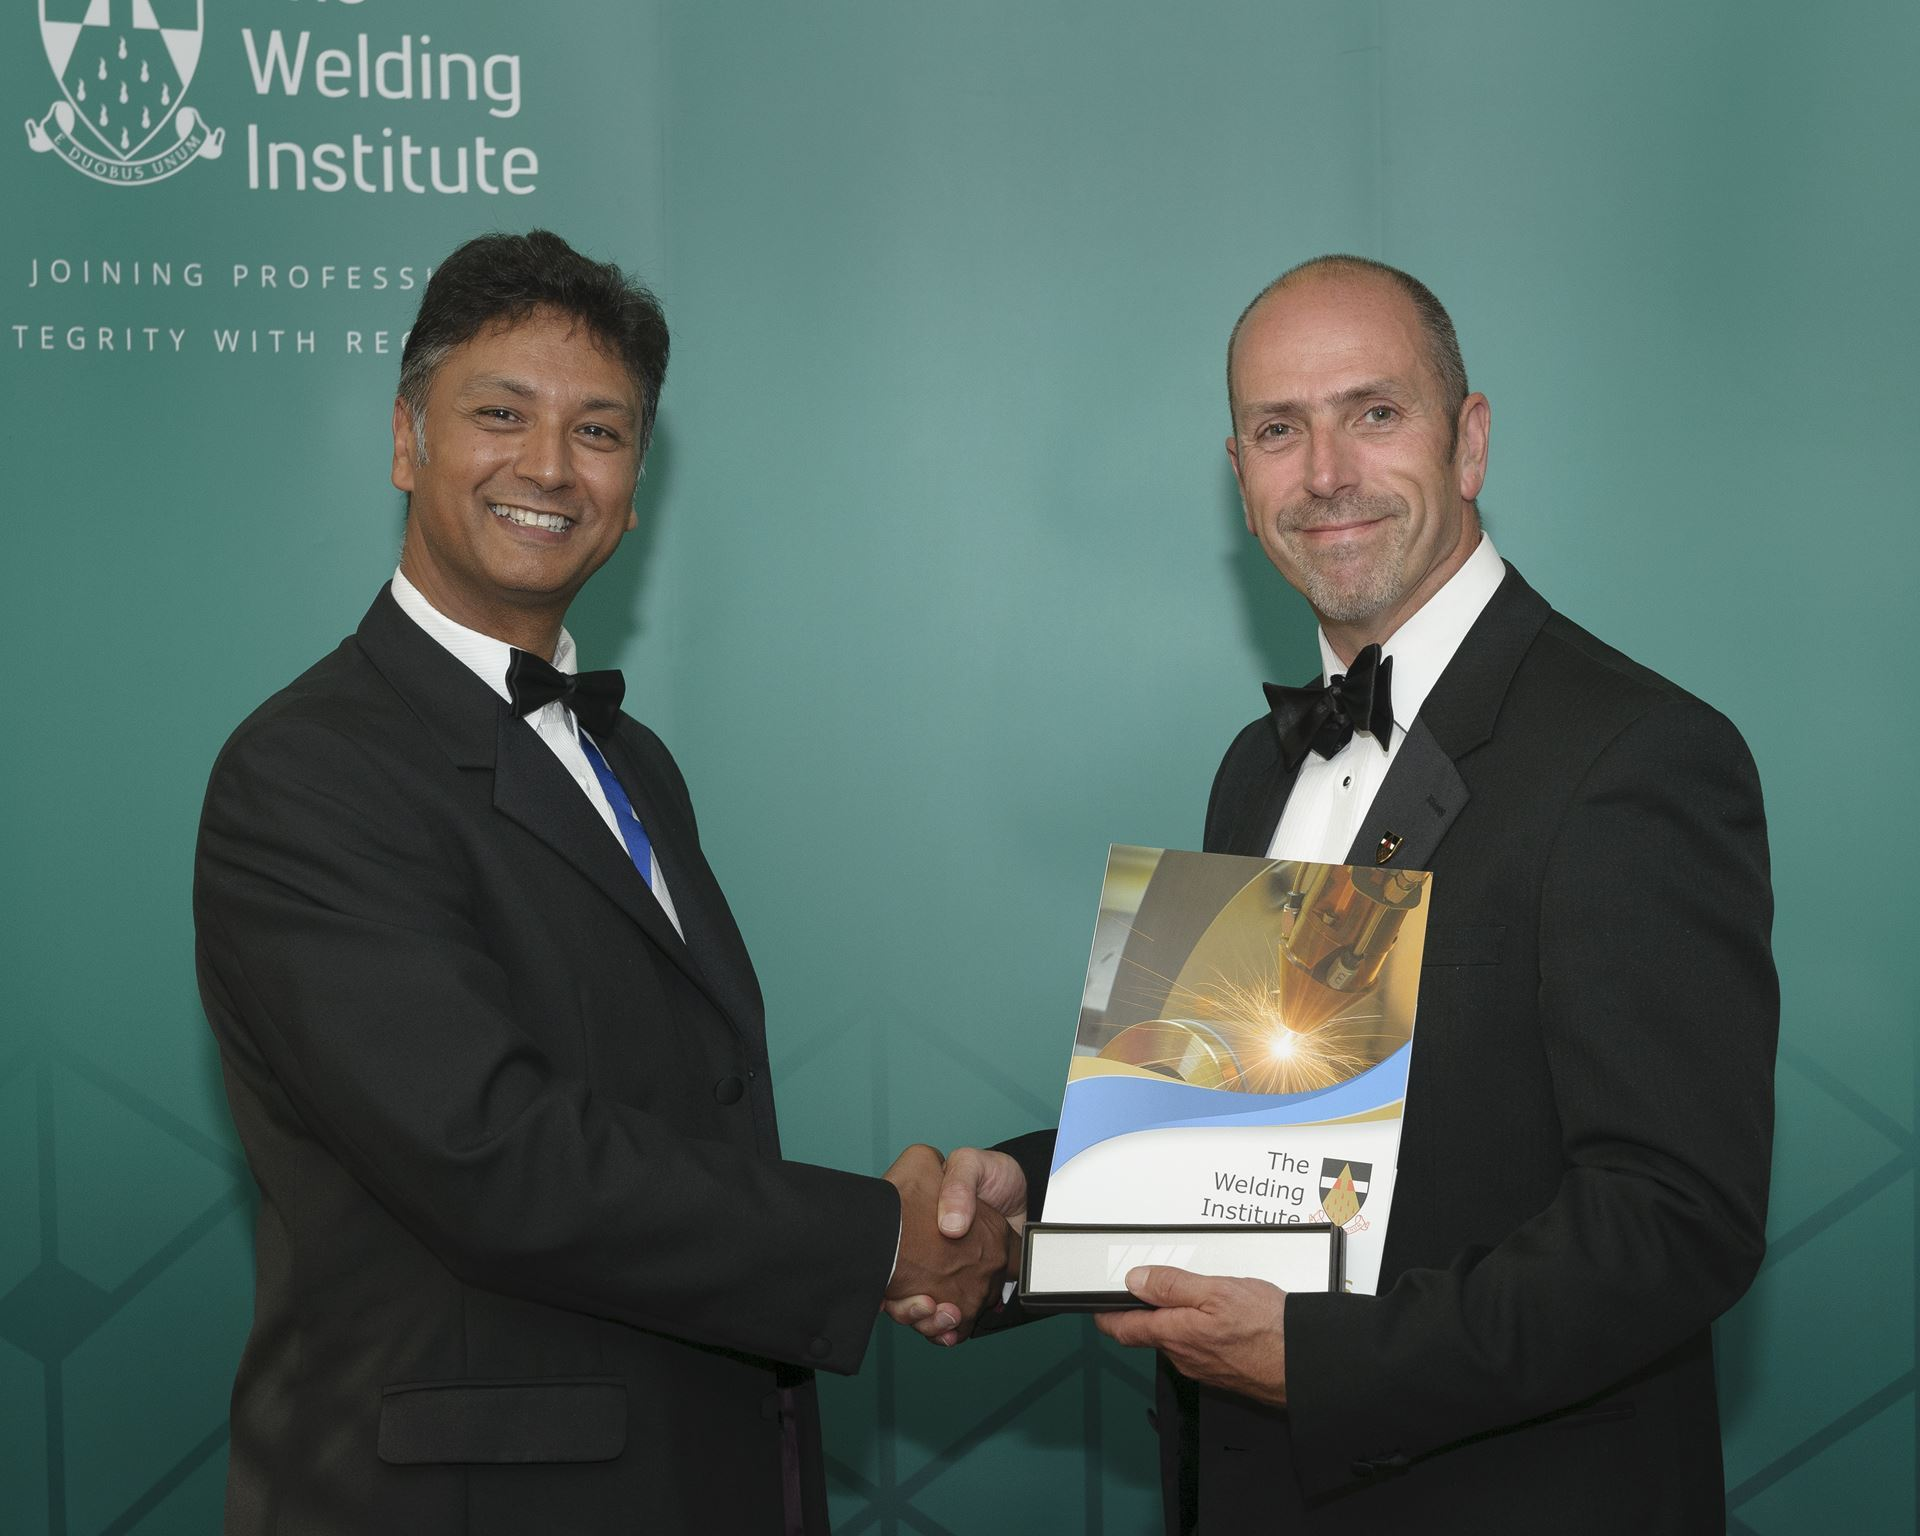 Mike Skyrme (Right) being presented with the Continuous Development and Learning award by Steve Jones (Left)